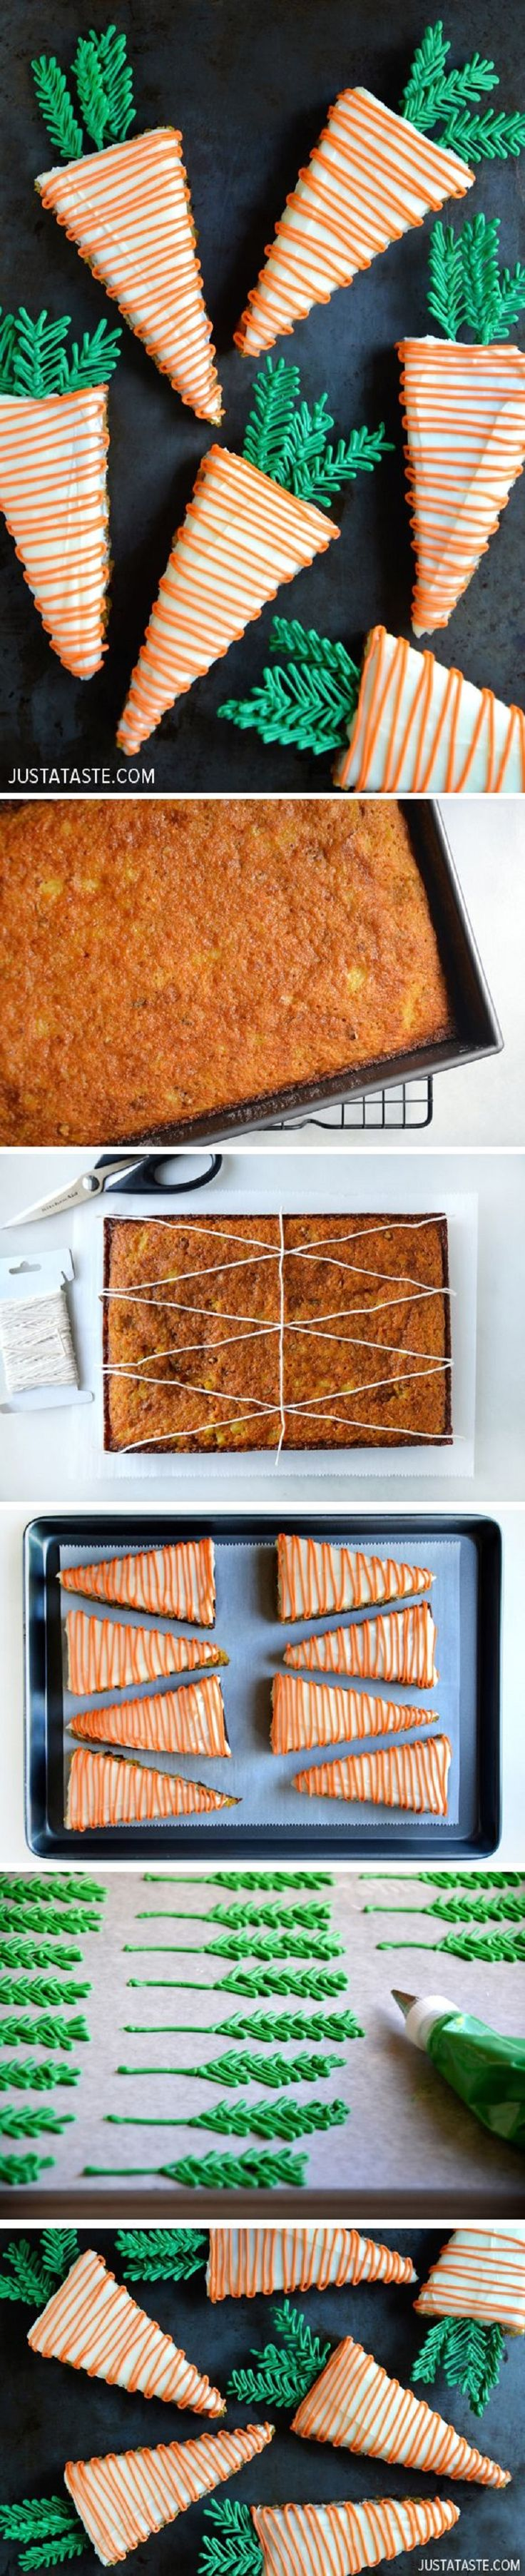 Pineapple Carrot Cake with Cream Cheese Frosting - 15 Best Spring Dessert Ideas | GleamItUp